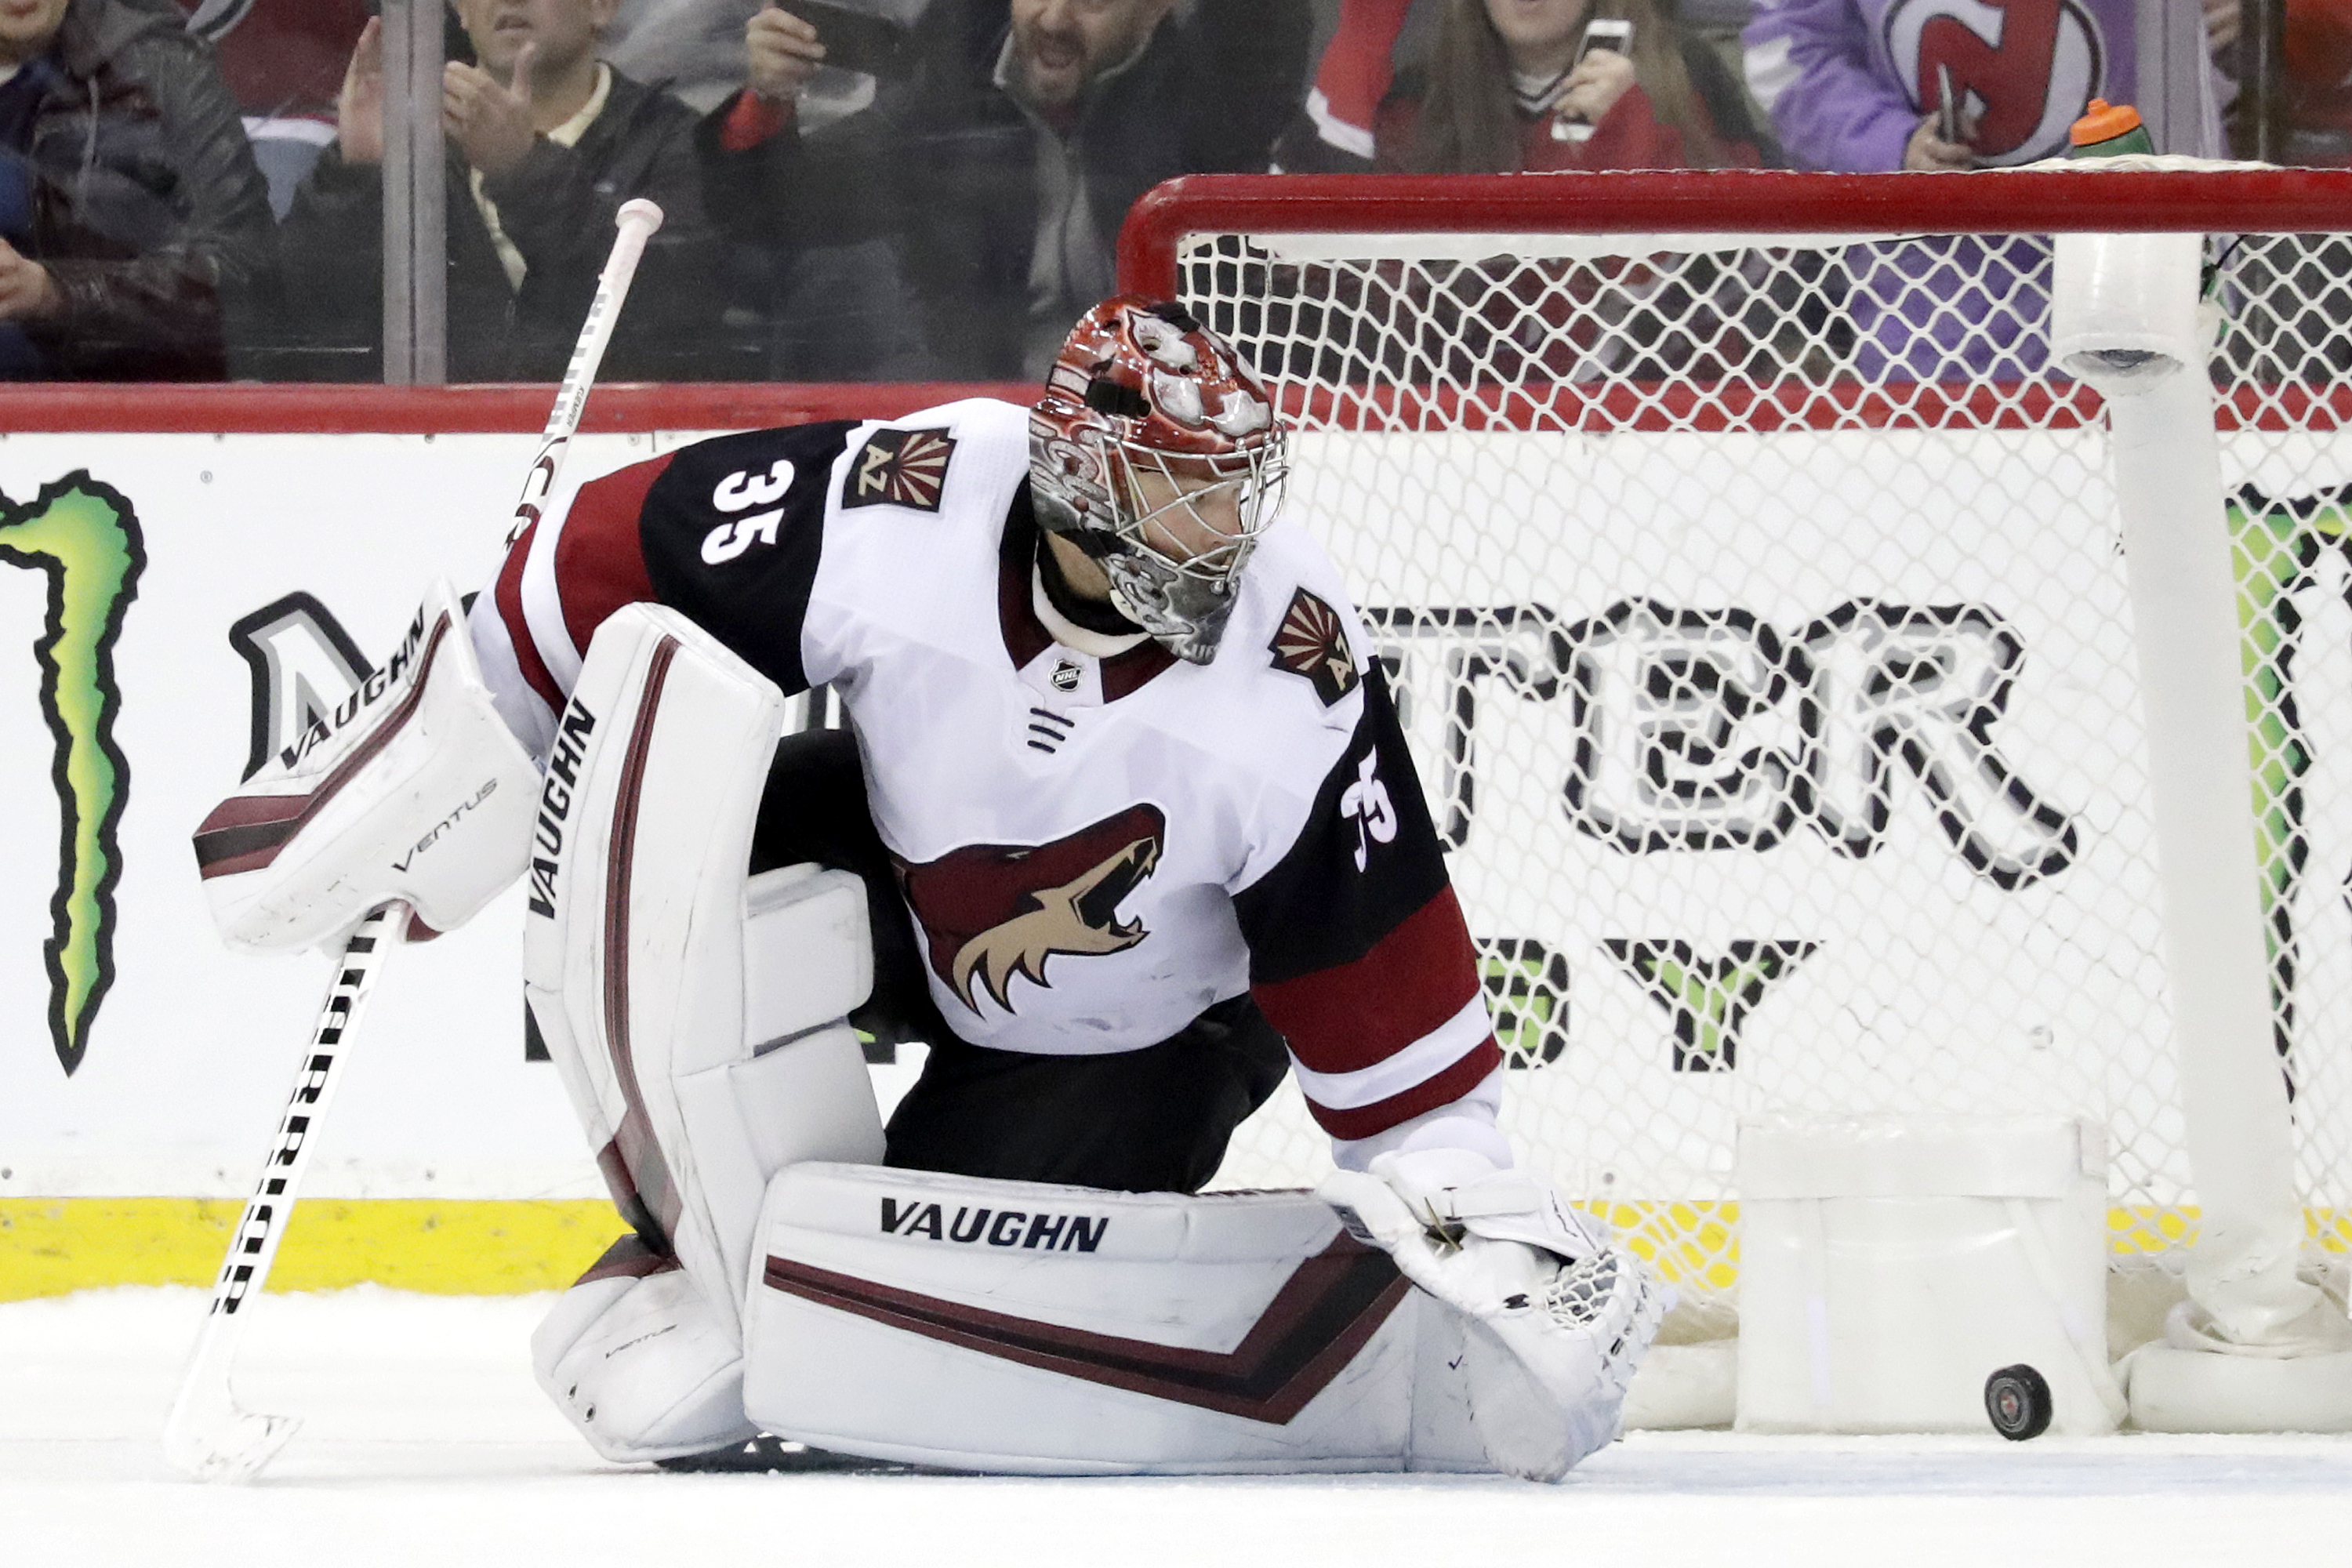 f6d1e4986 Coyotes drop fourth in a row with shootout loss to Devils